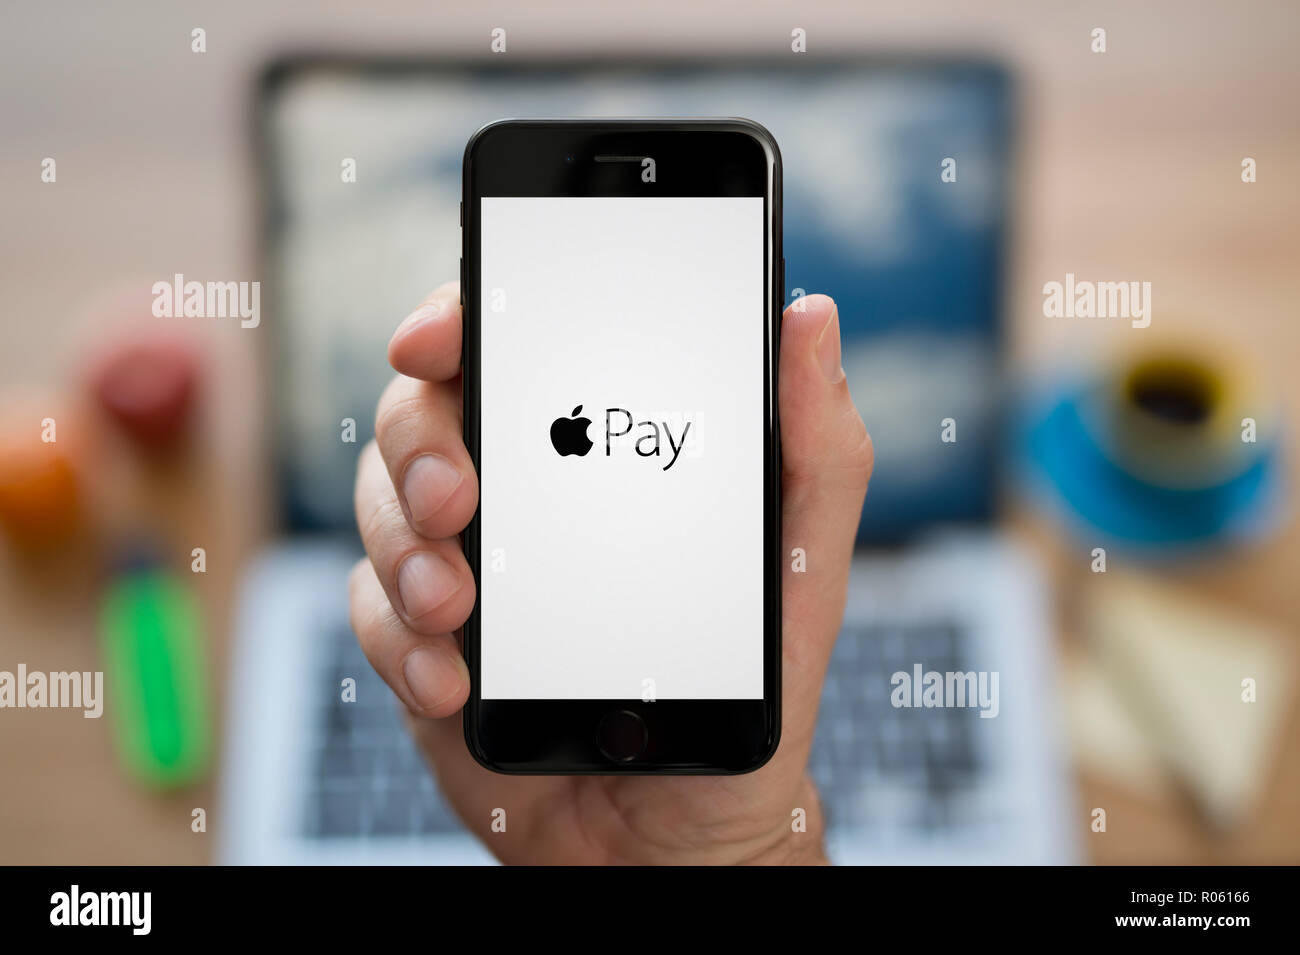 A man looks at his iPhone which displays the Apple Pay logo